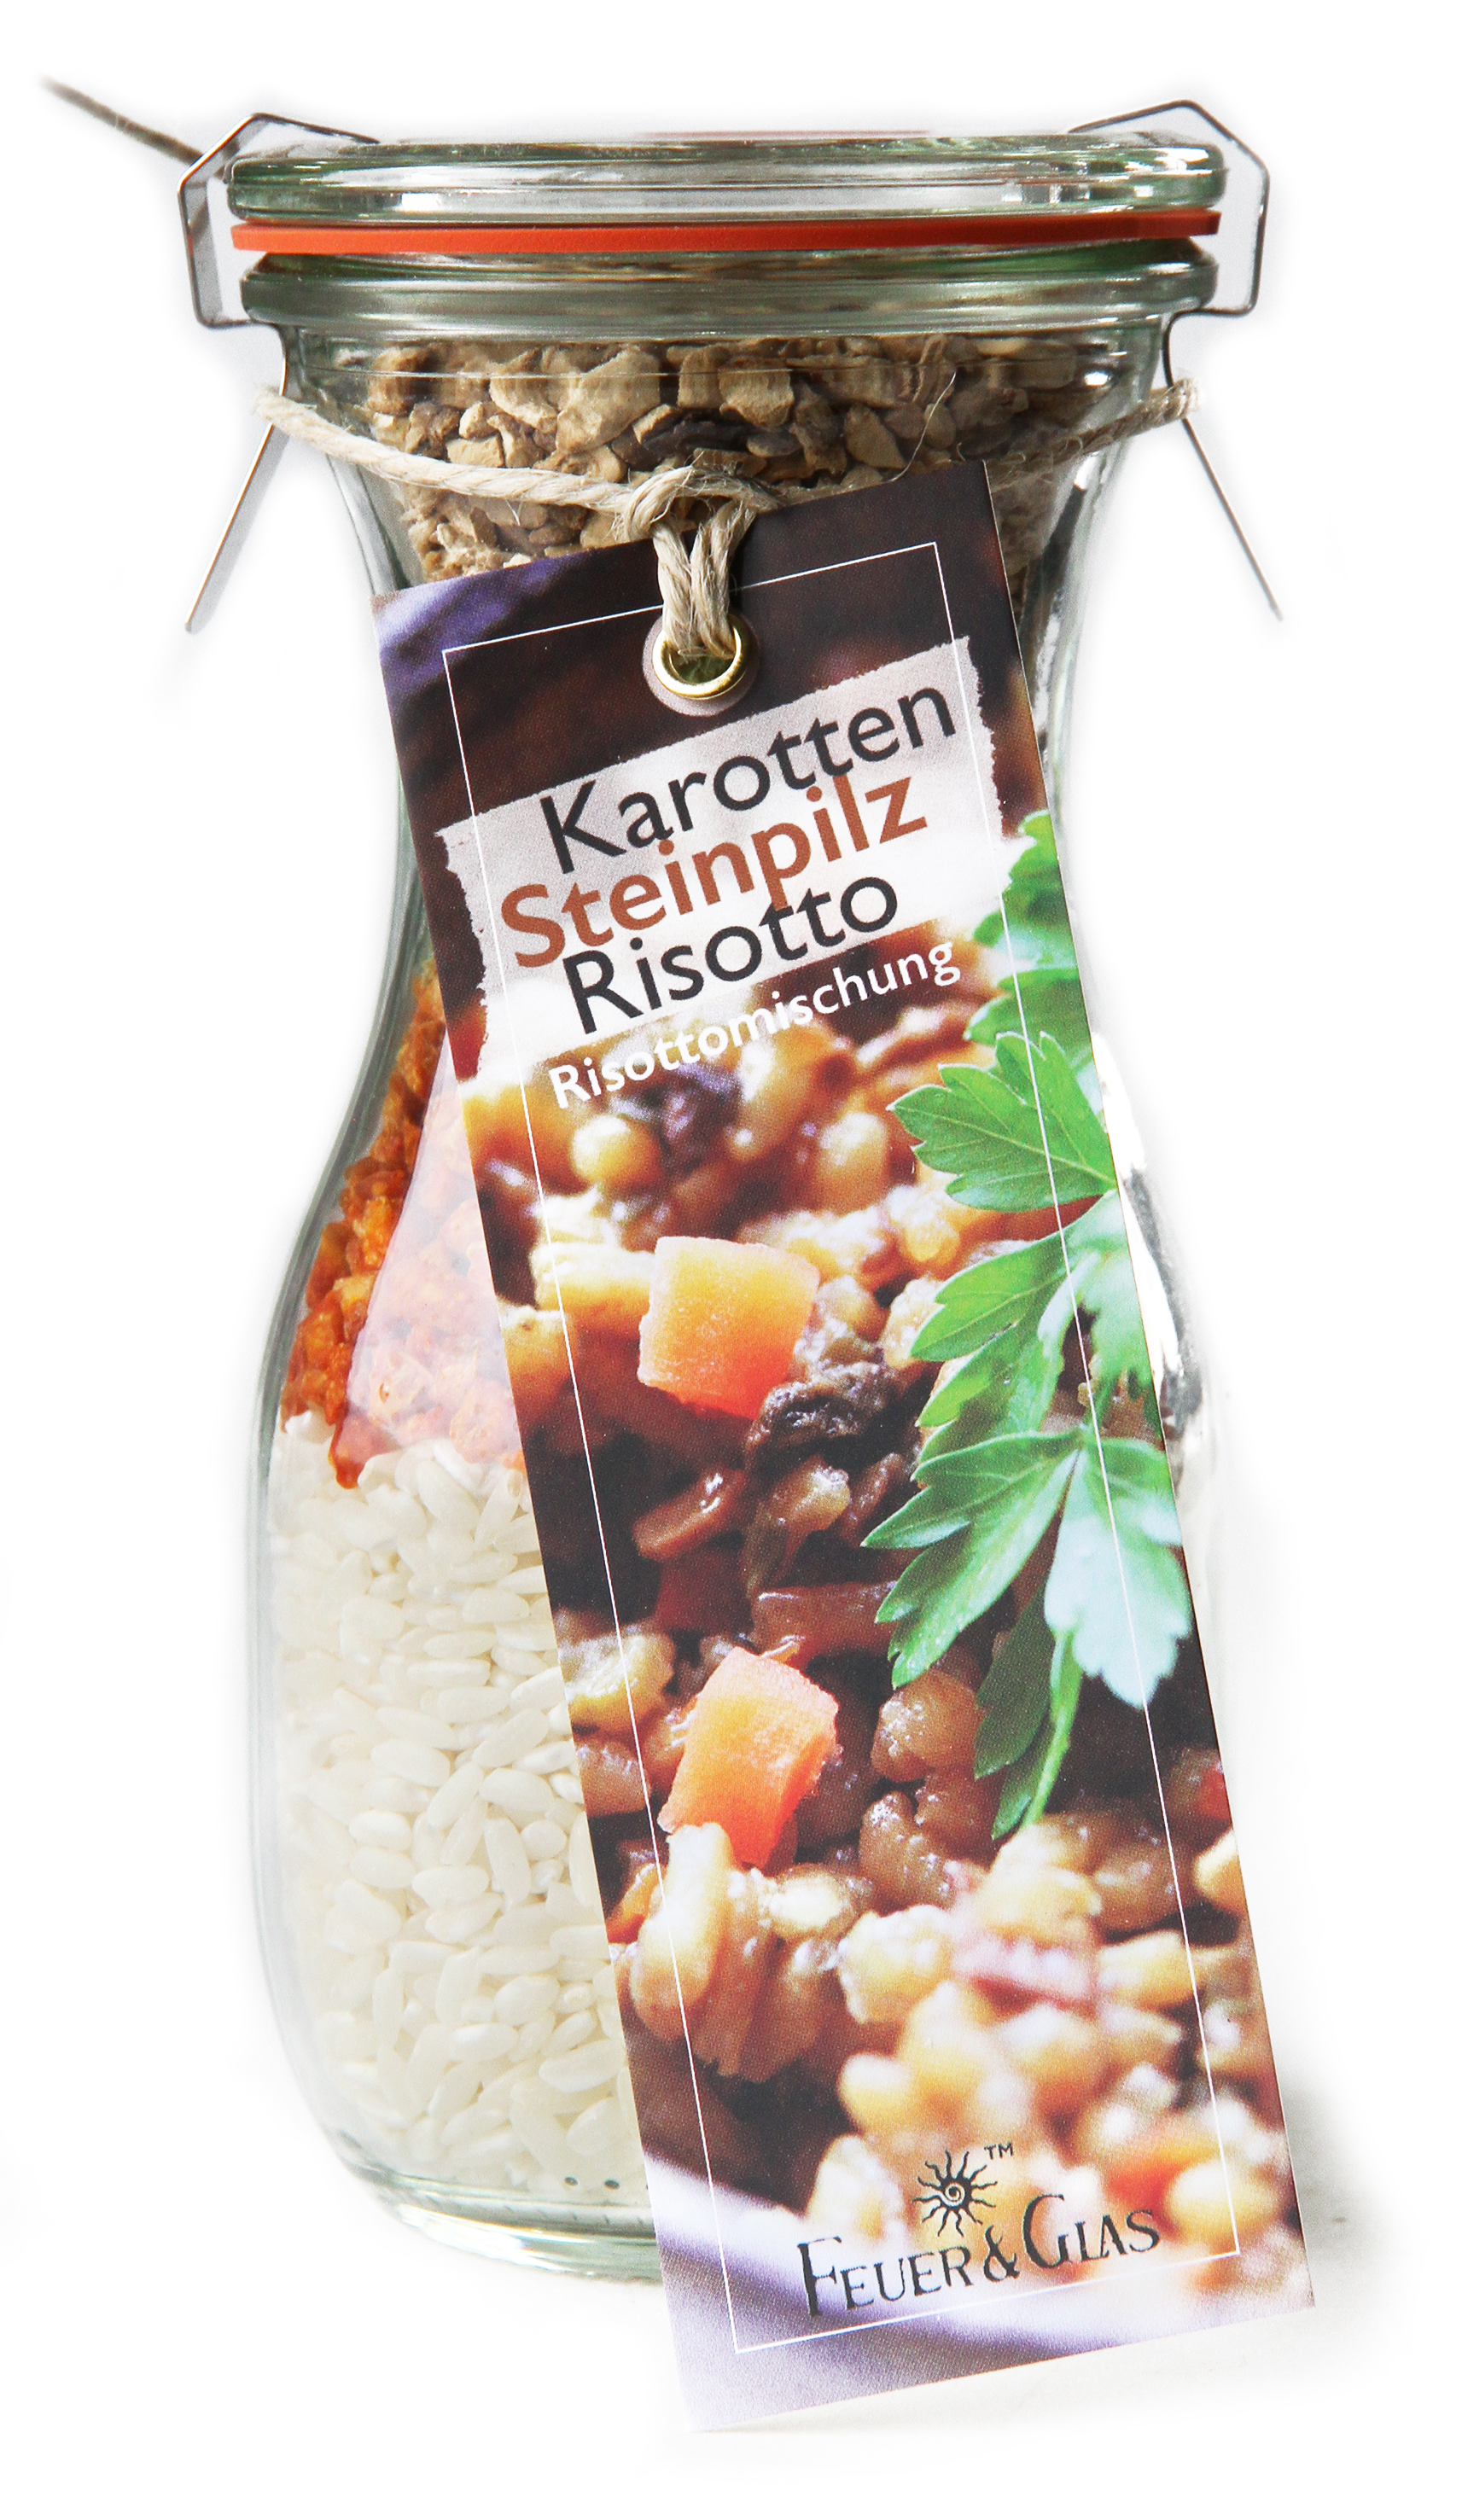 Karotten Steinpilz Risotto Mini ( 250 ml)